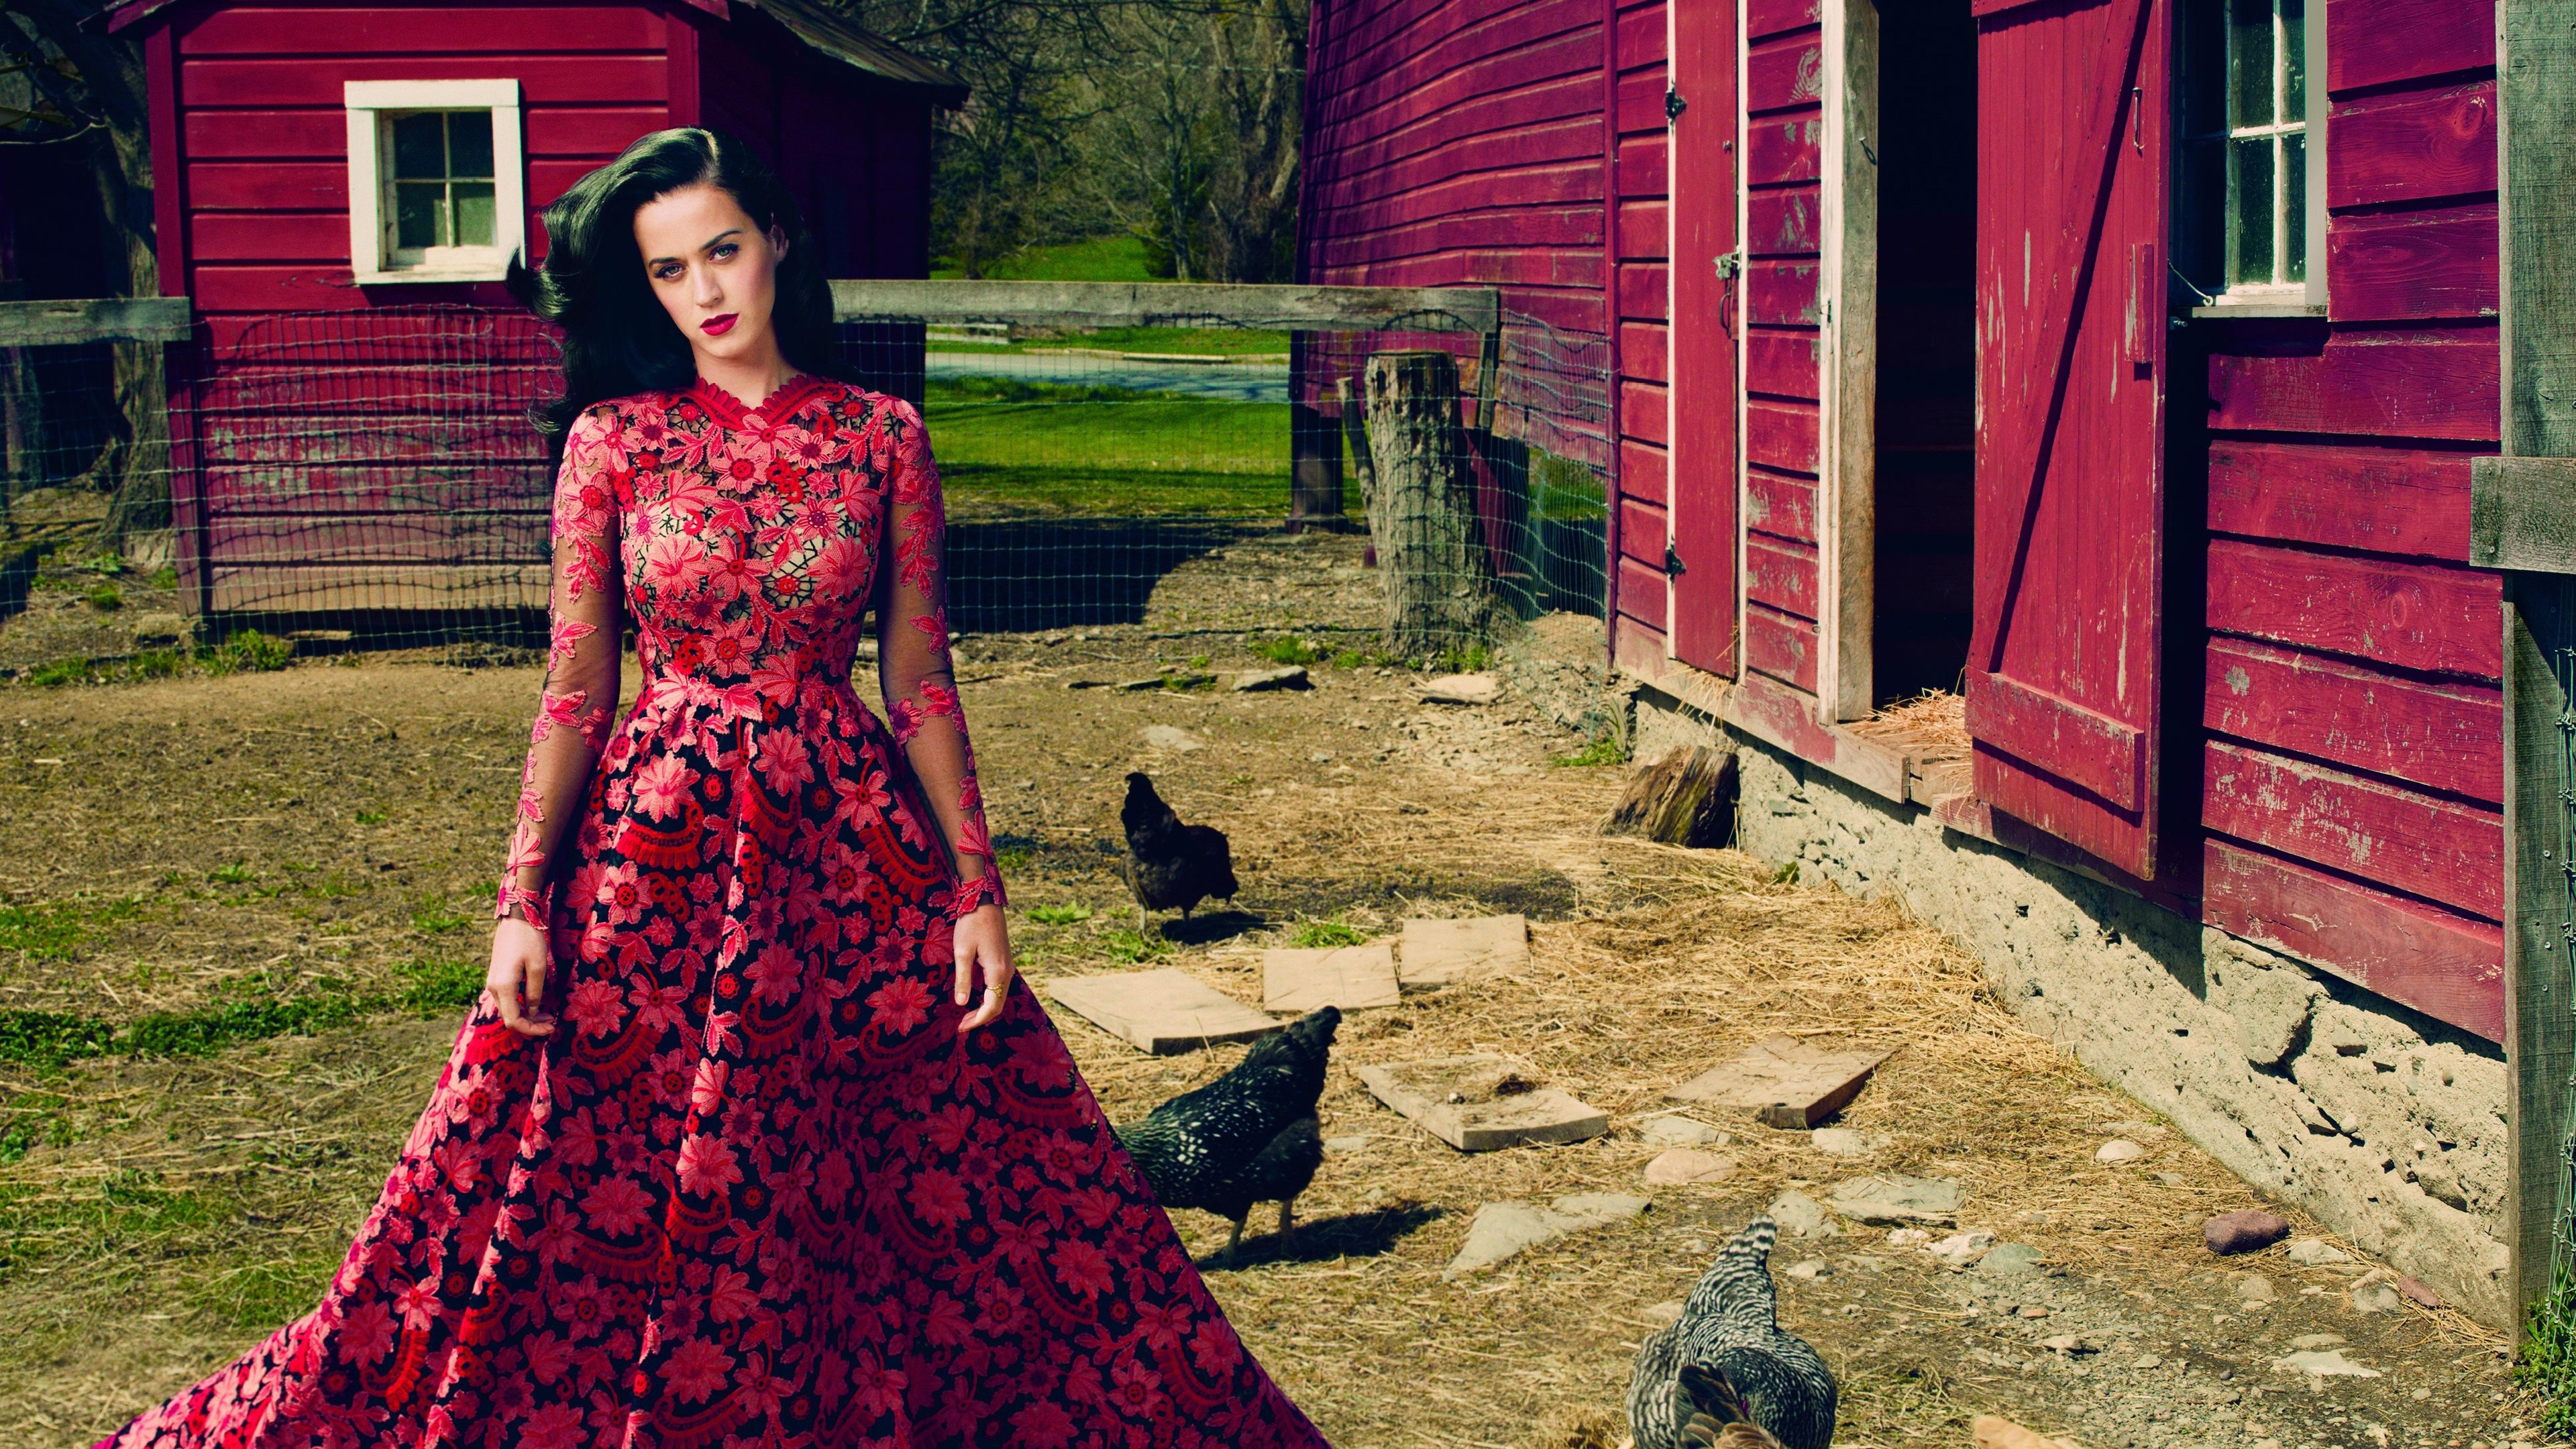 Katy Perry Wallpaper For Iphone Katy Perry 2015 Wallpapers Hd Wallpapers Id 15075